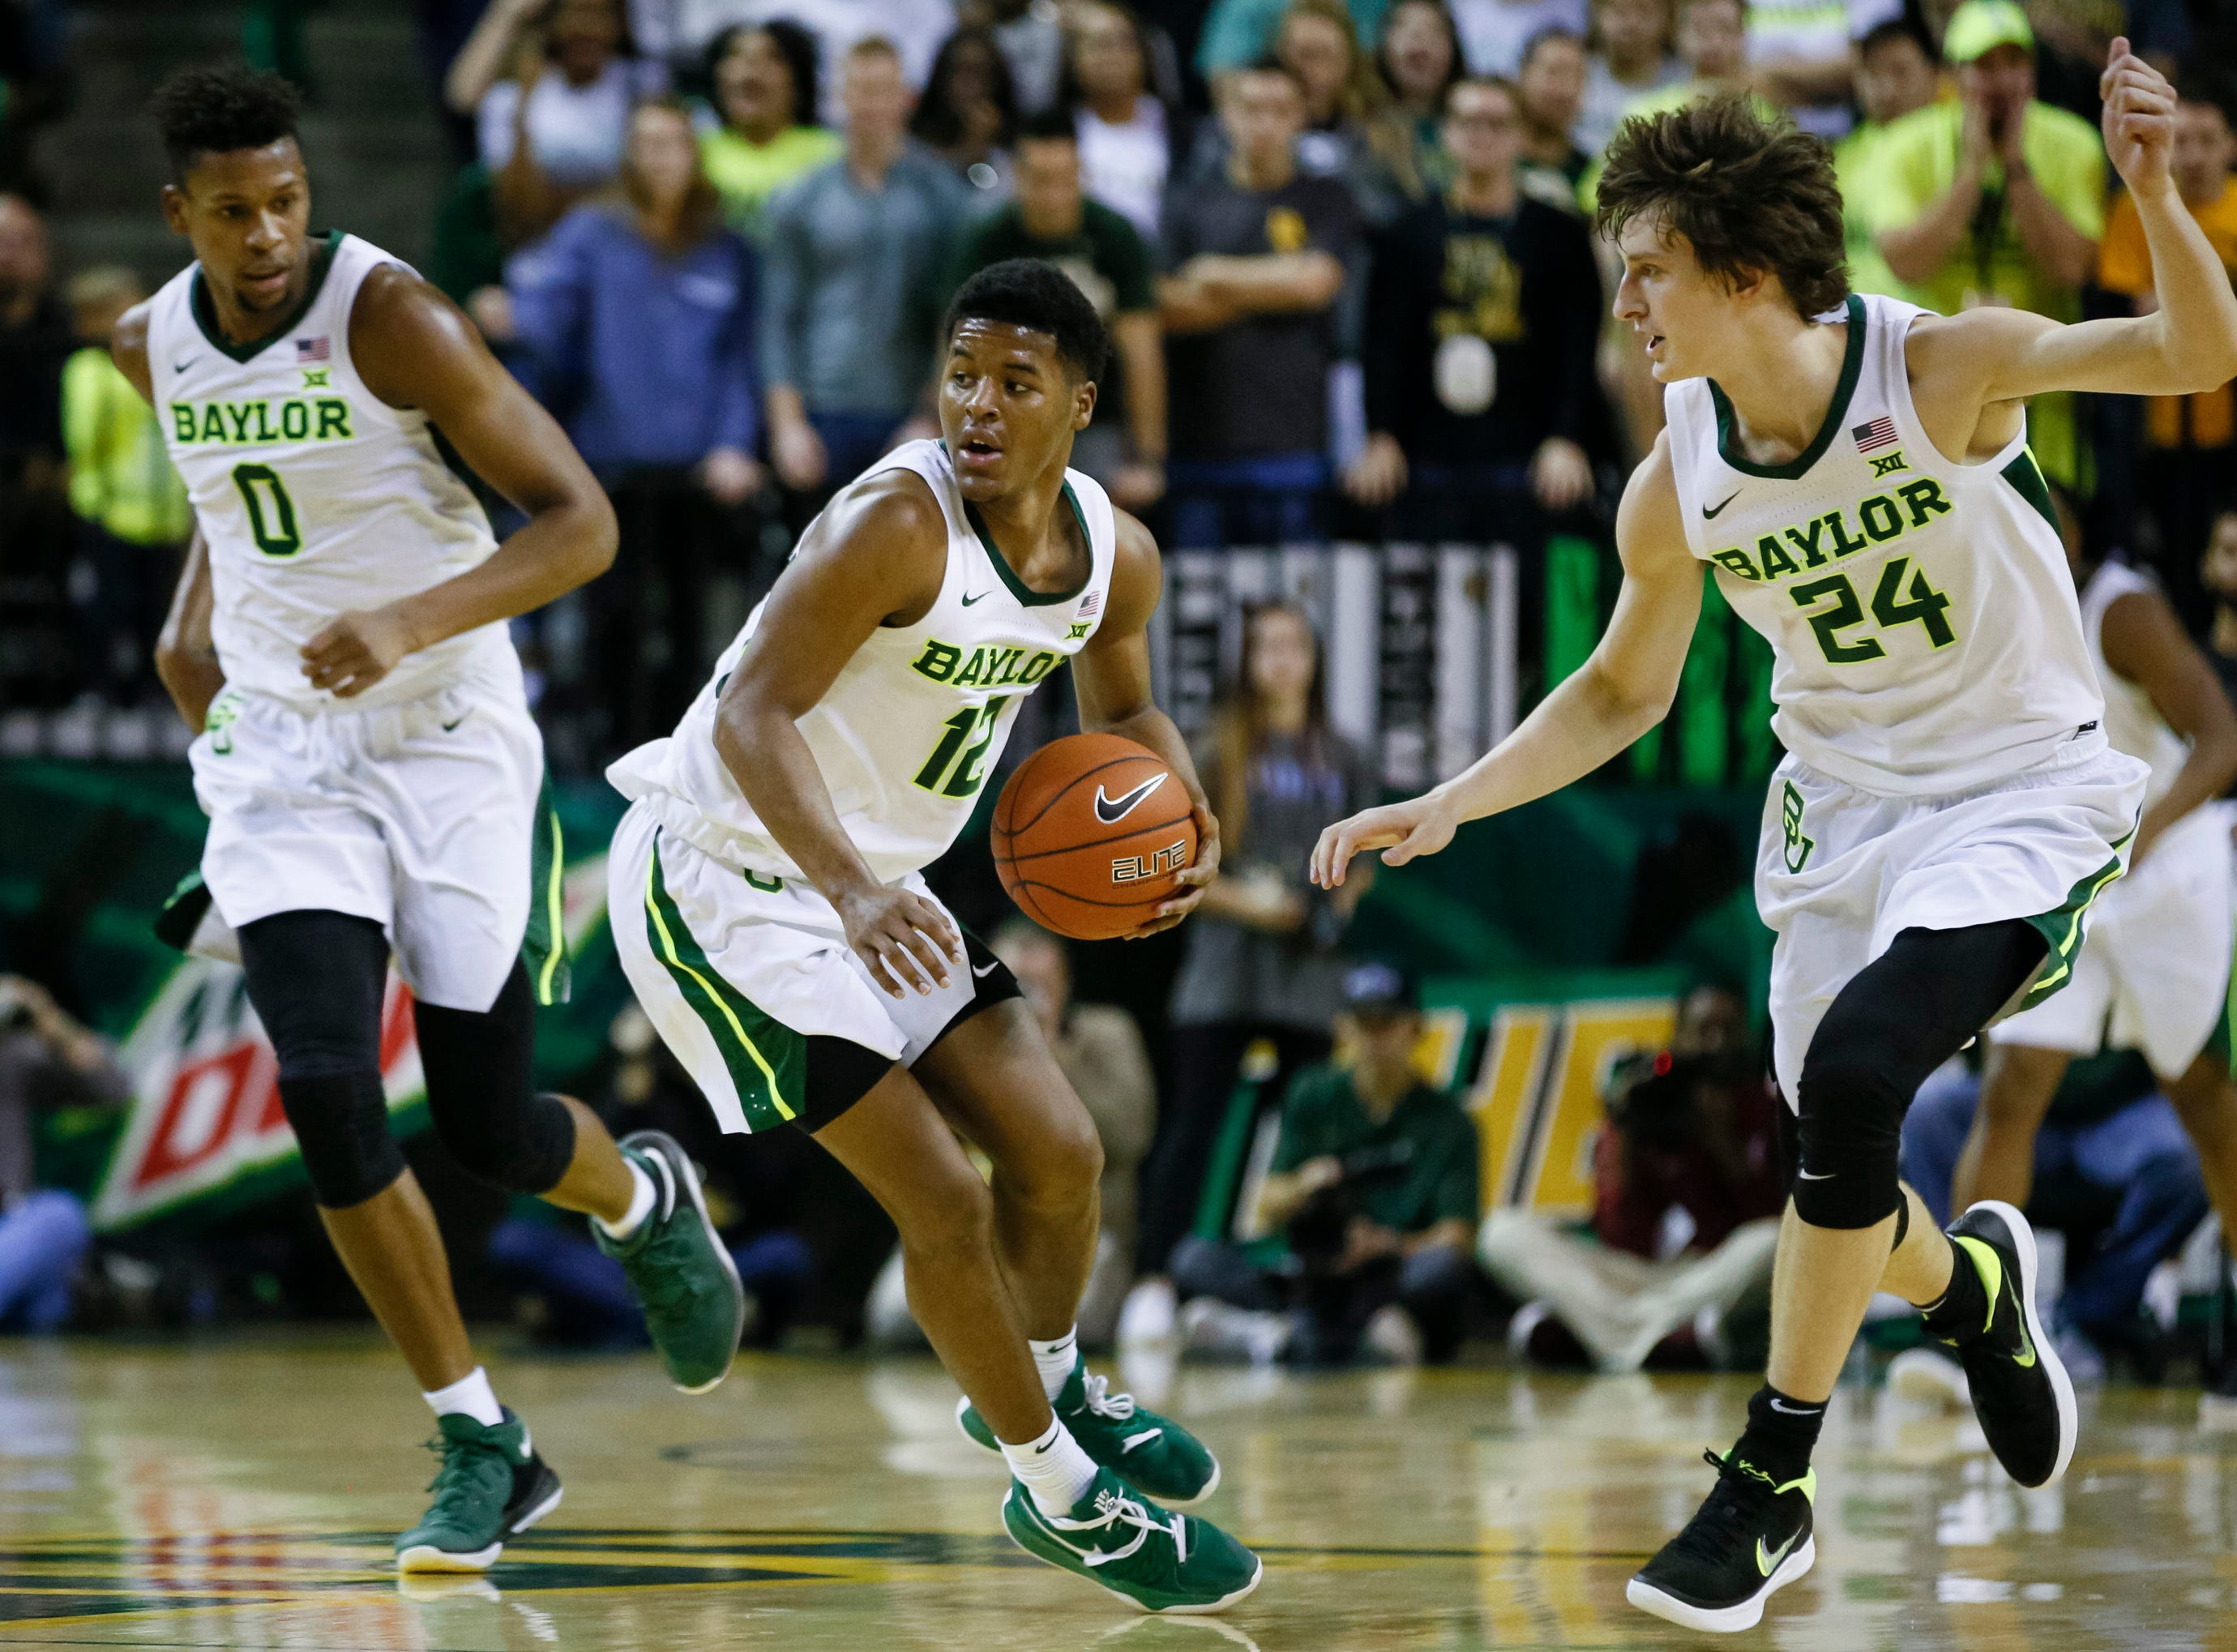 Jan 26, 2019; Waco, TX, USA; Baylor Bears guard Jared Butler (12) picks up the loose ball during the second half against the Alabama Crimson Tide at Ferrell Center. Mandatory Credit: Ray Carlin-USA TODAY Sports